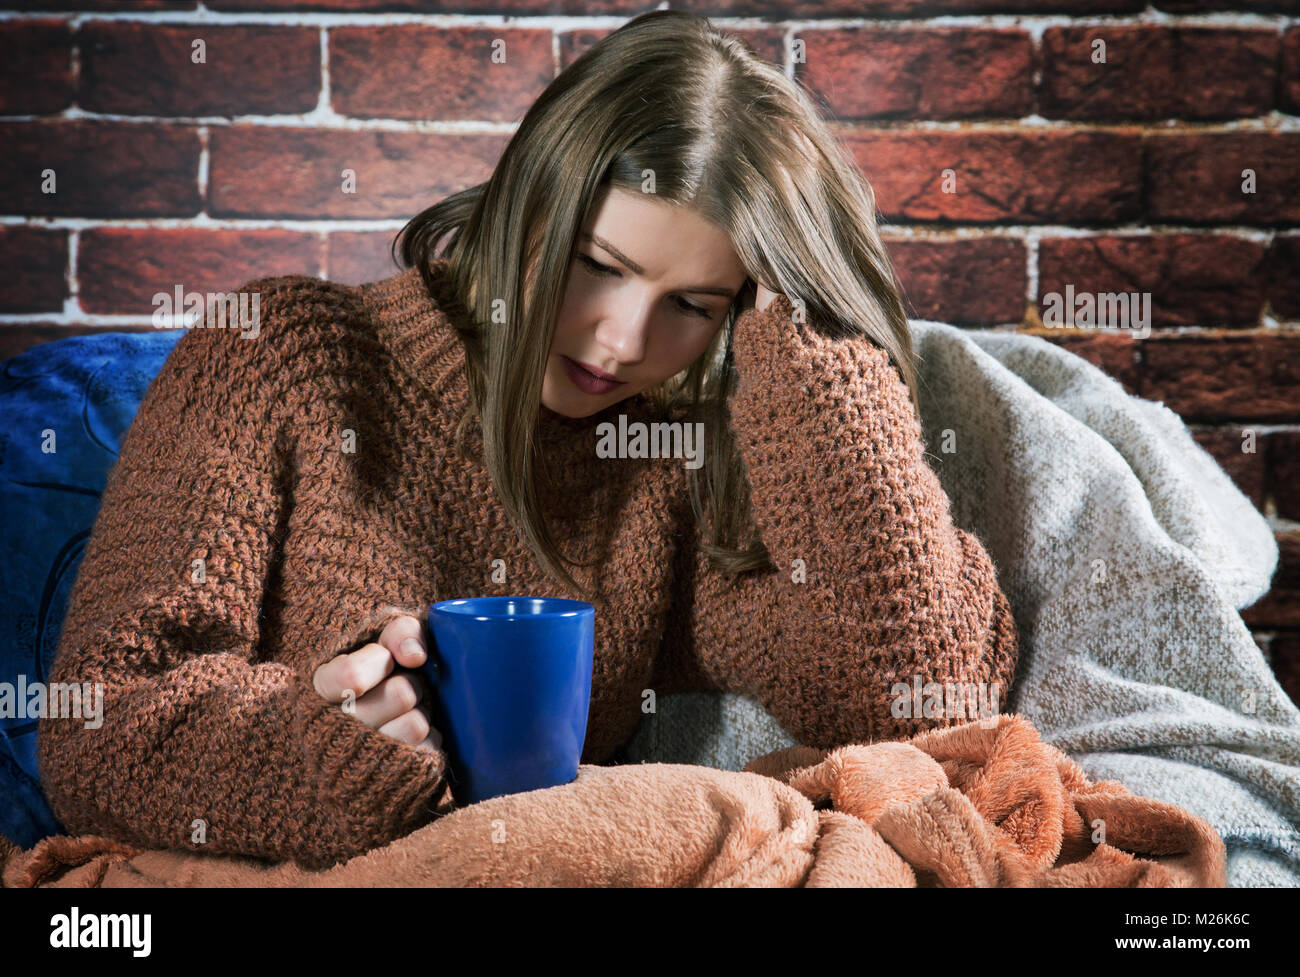 girl with a cup of tea sits wrapped in a rug Stock Photo